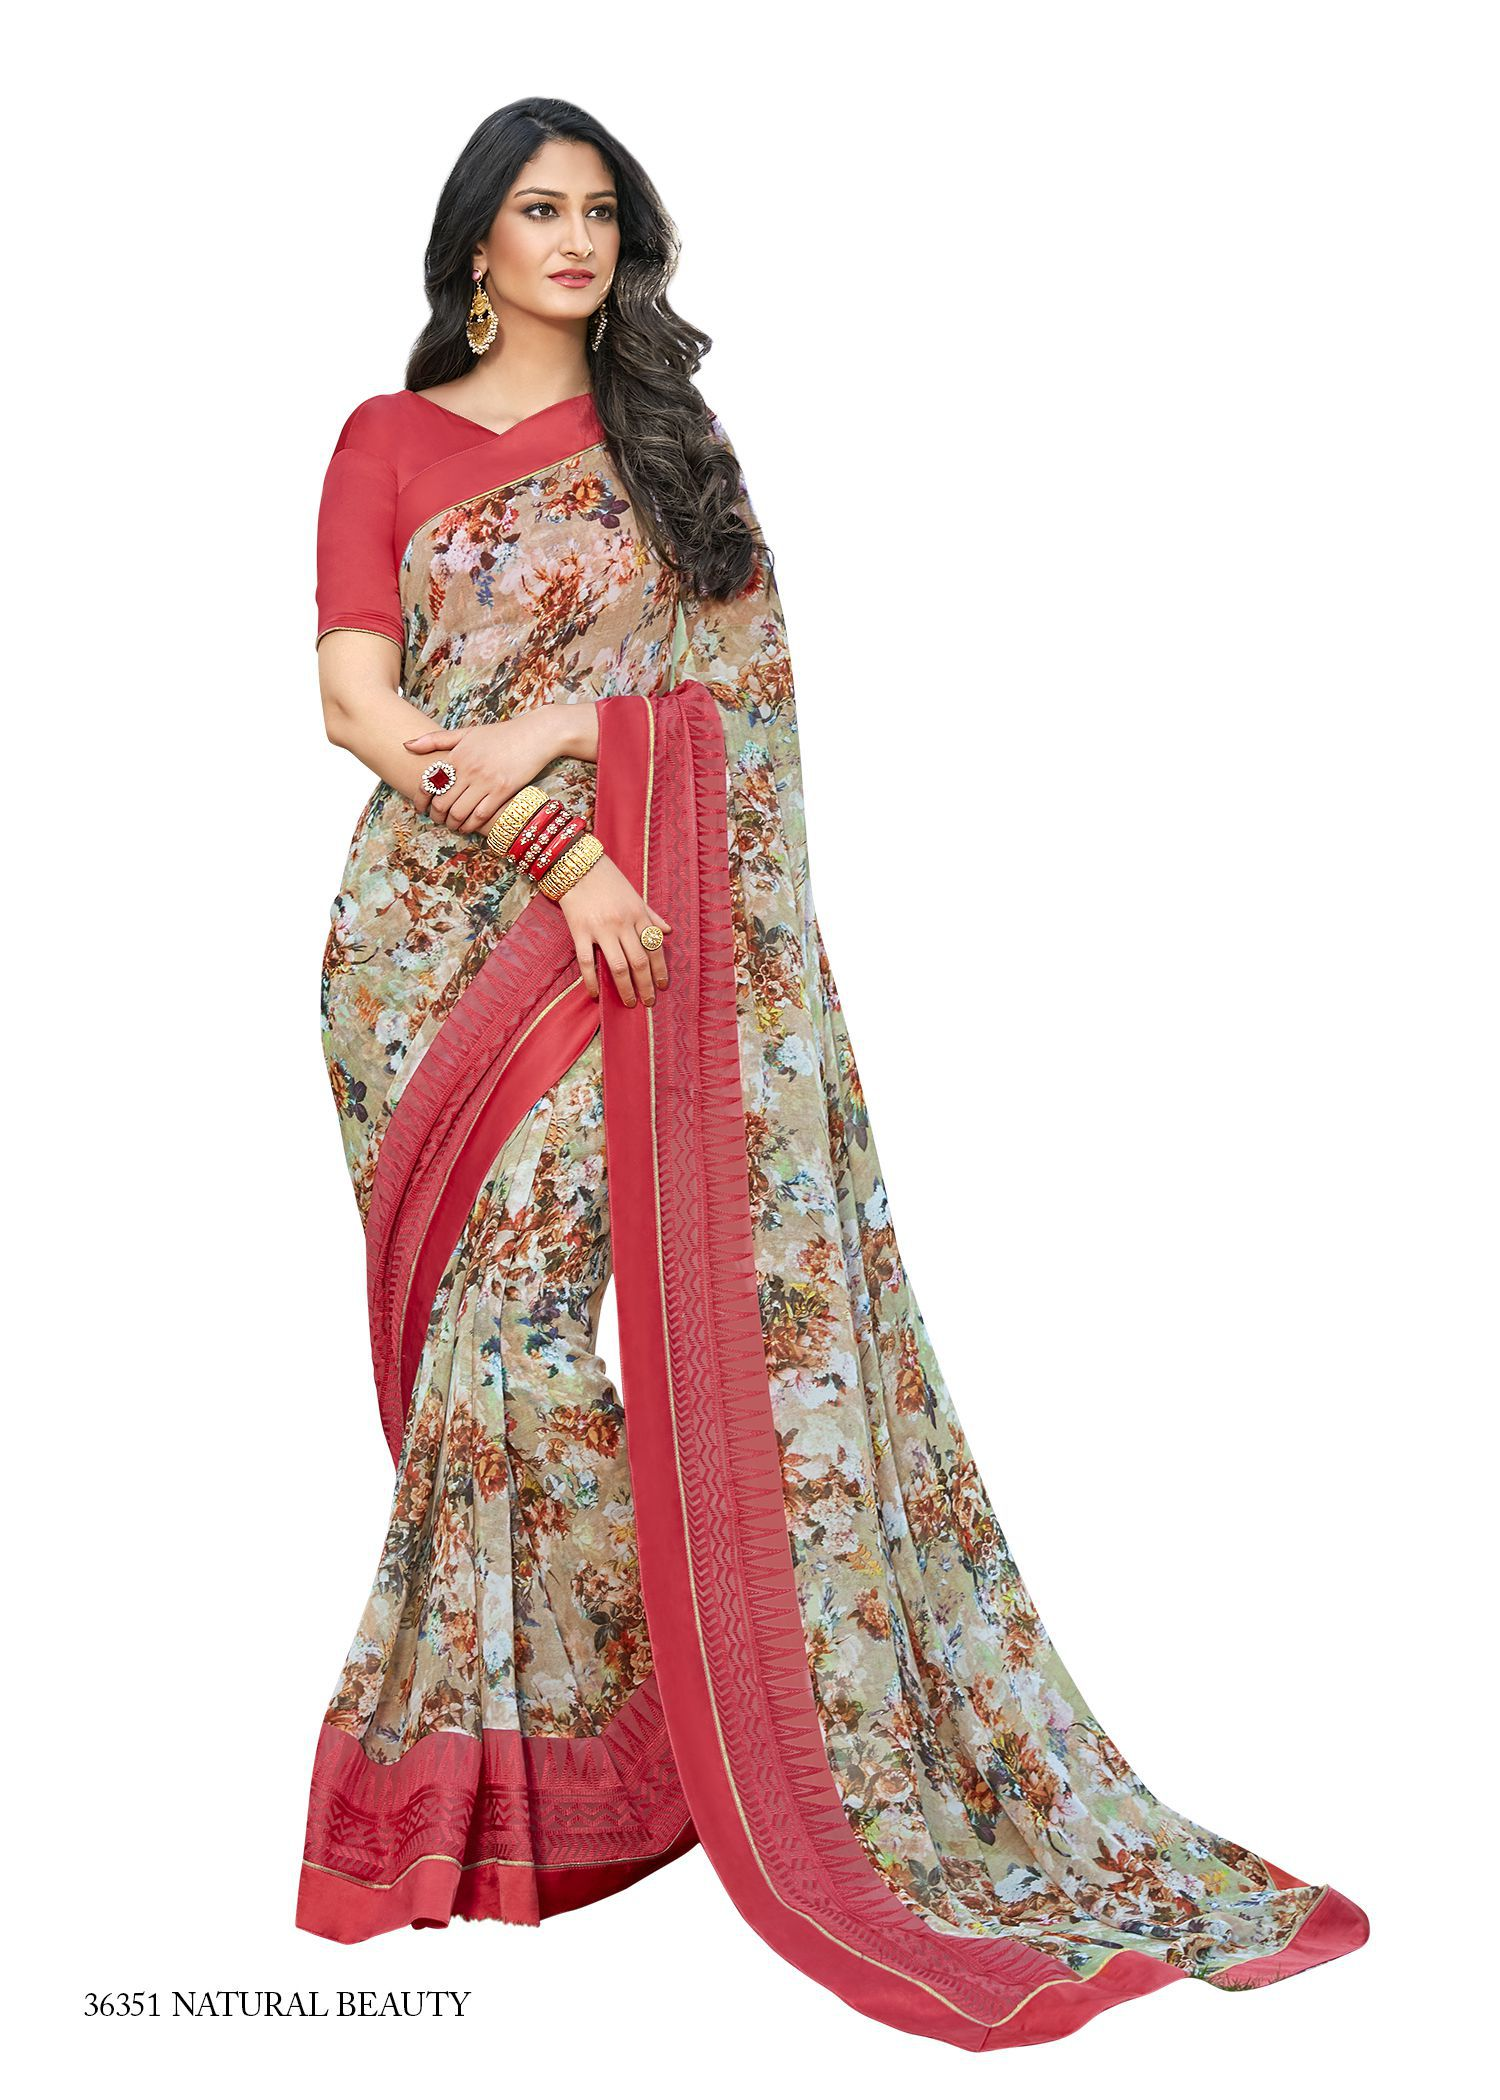 b42f47c2b32 Vipul Red and Beige Georgette Saree - Buy Vipul Red and Beige Georgette  Saree Online at Low Price - Snapdeal.com